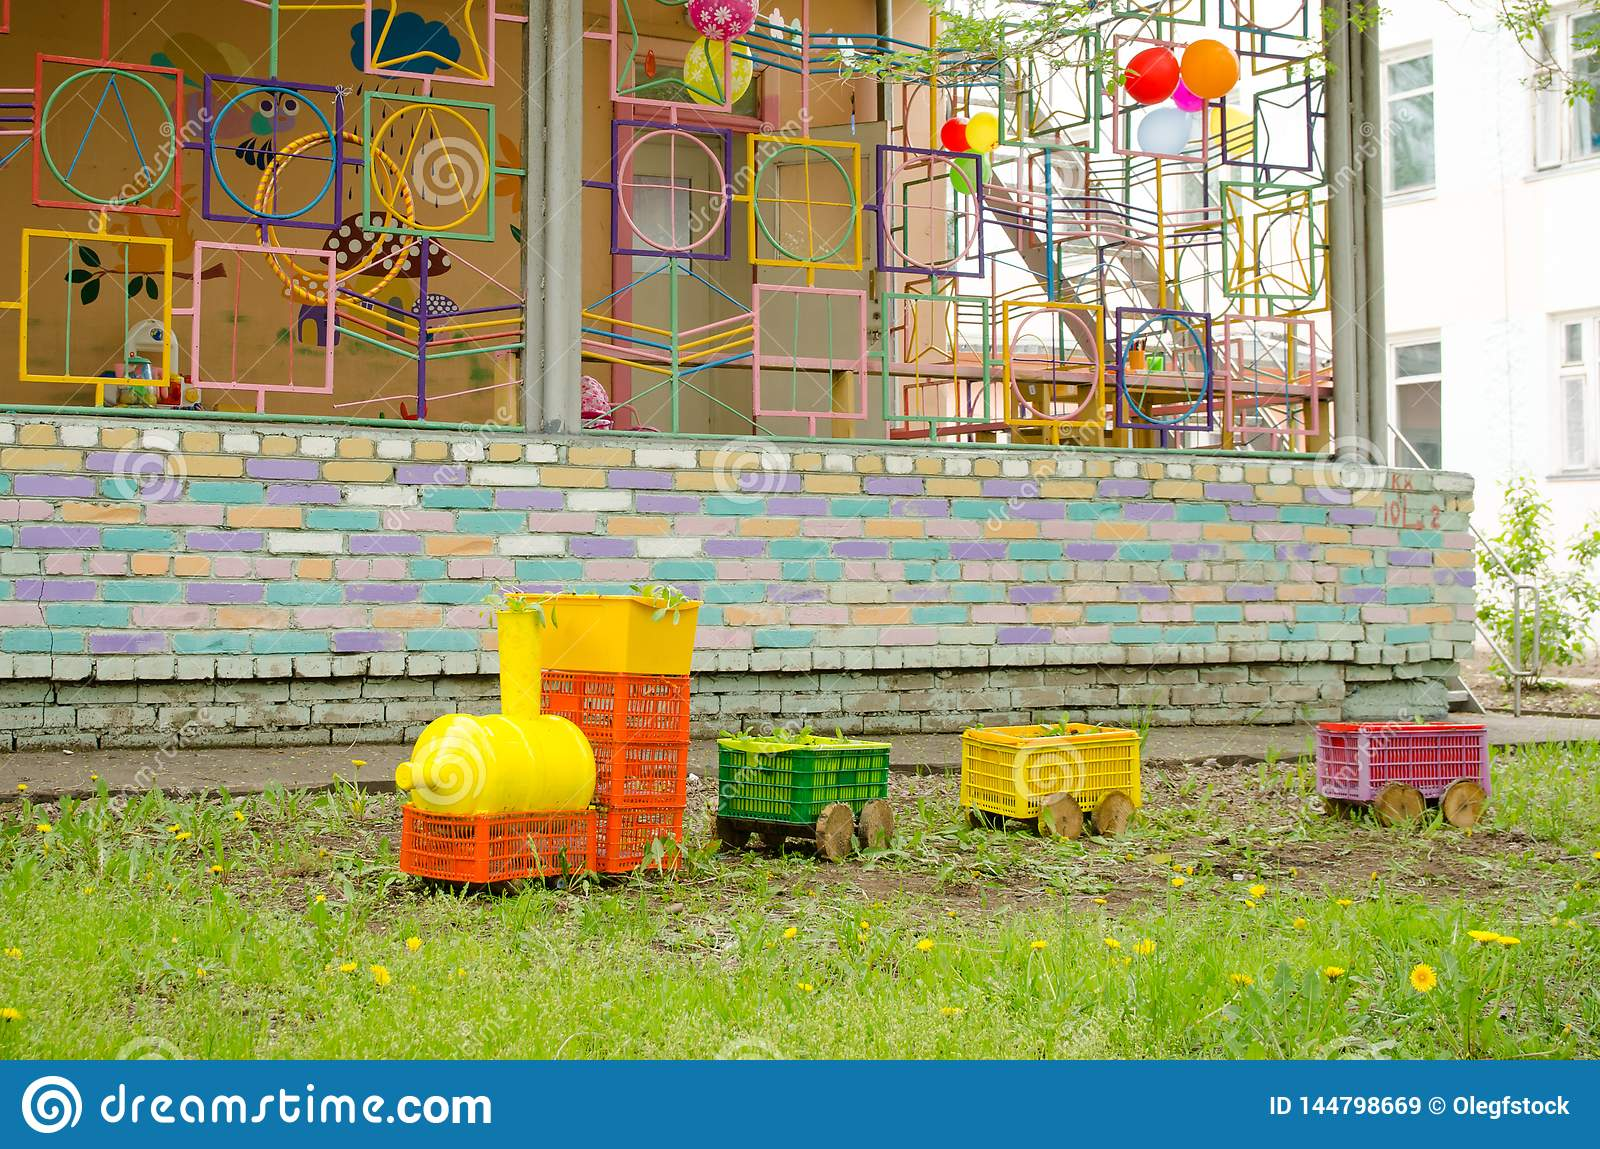 Steam locomotive made of plastic boxes and bottles on lawn on playground